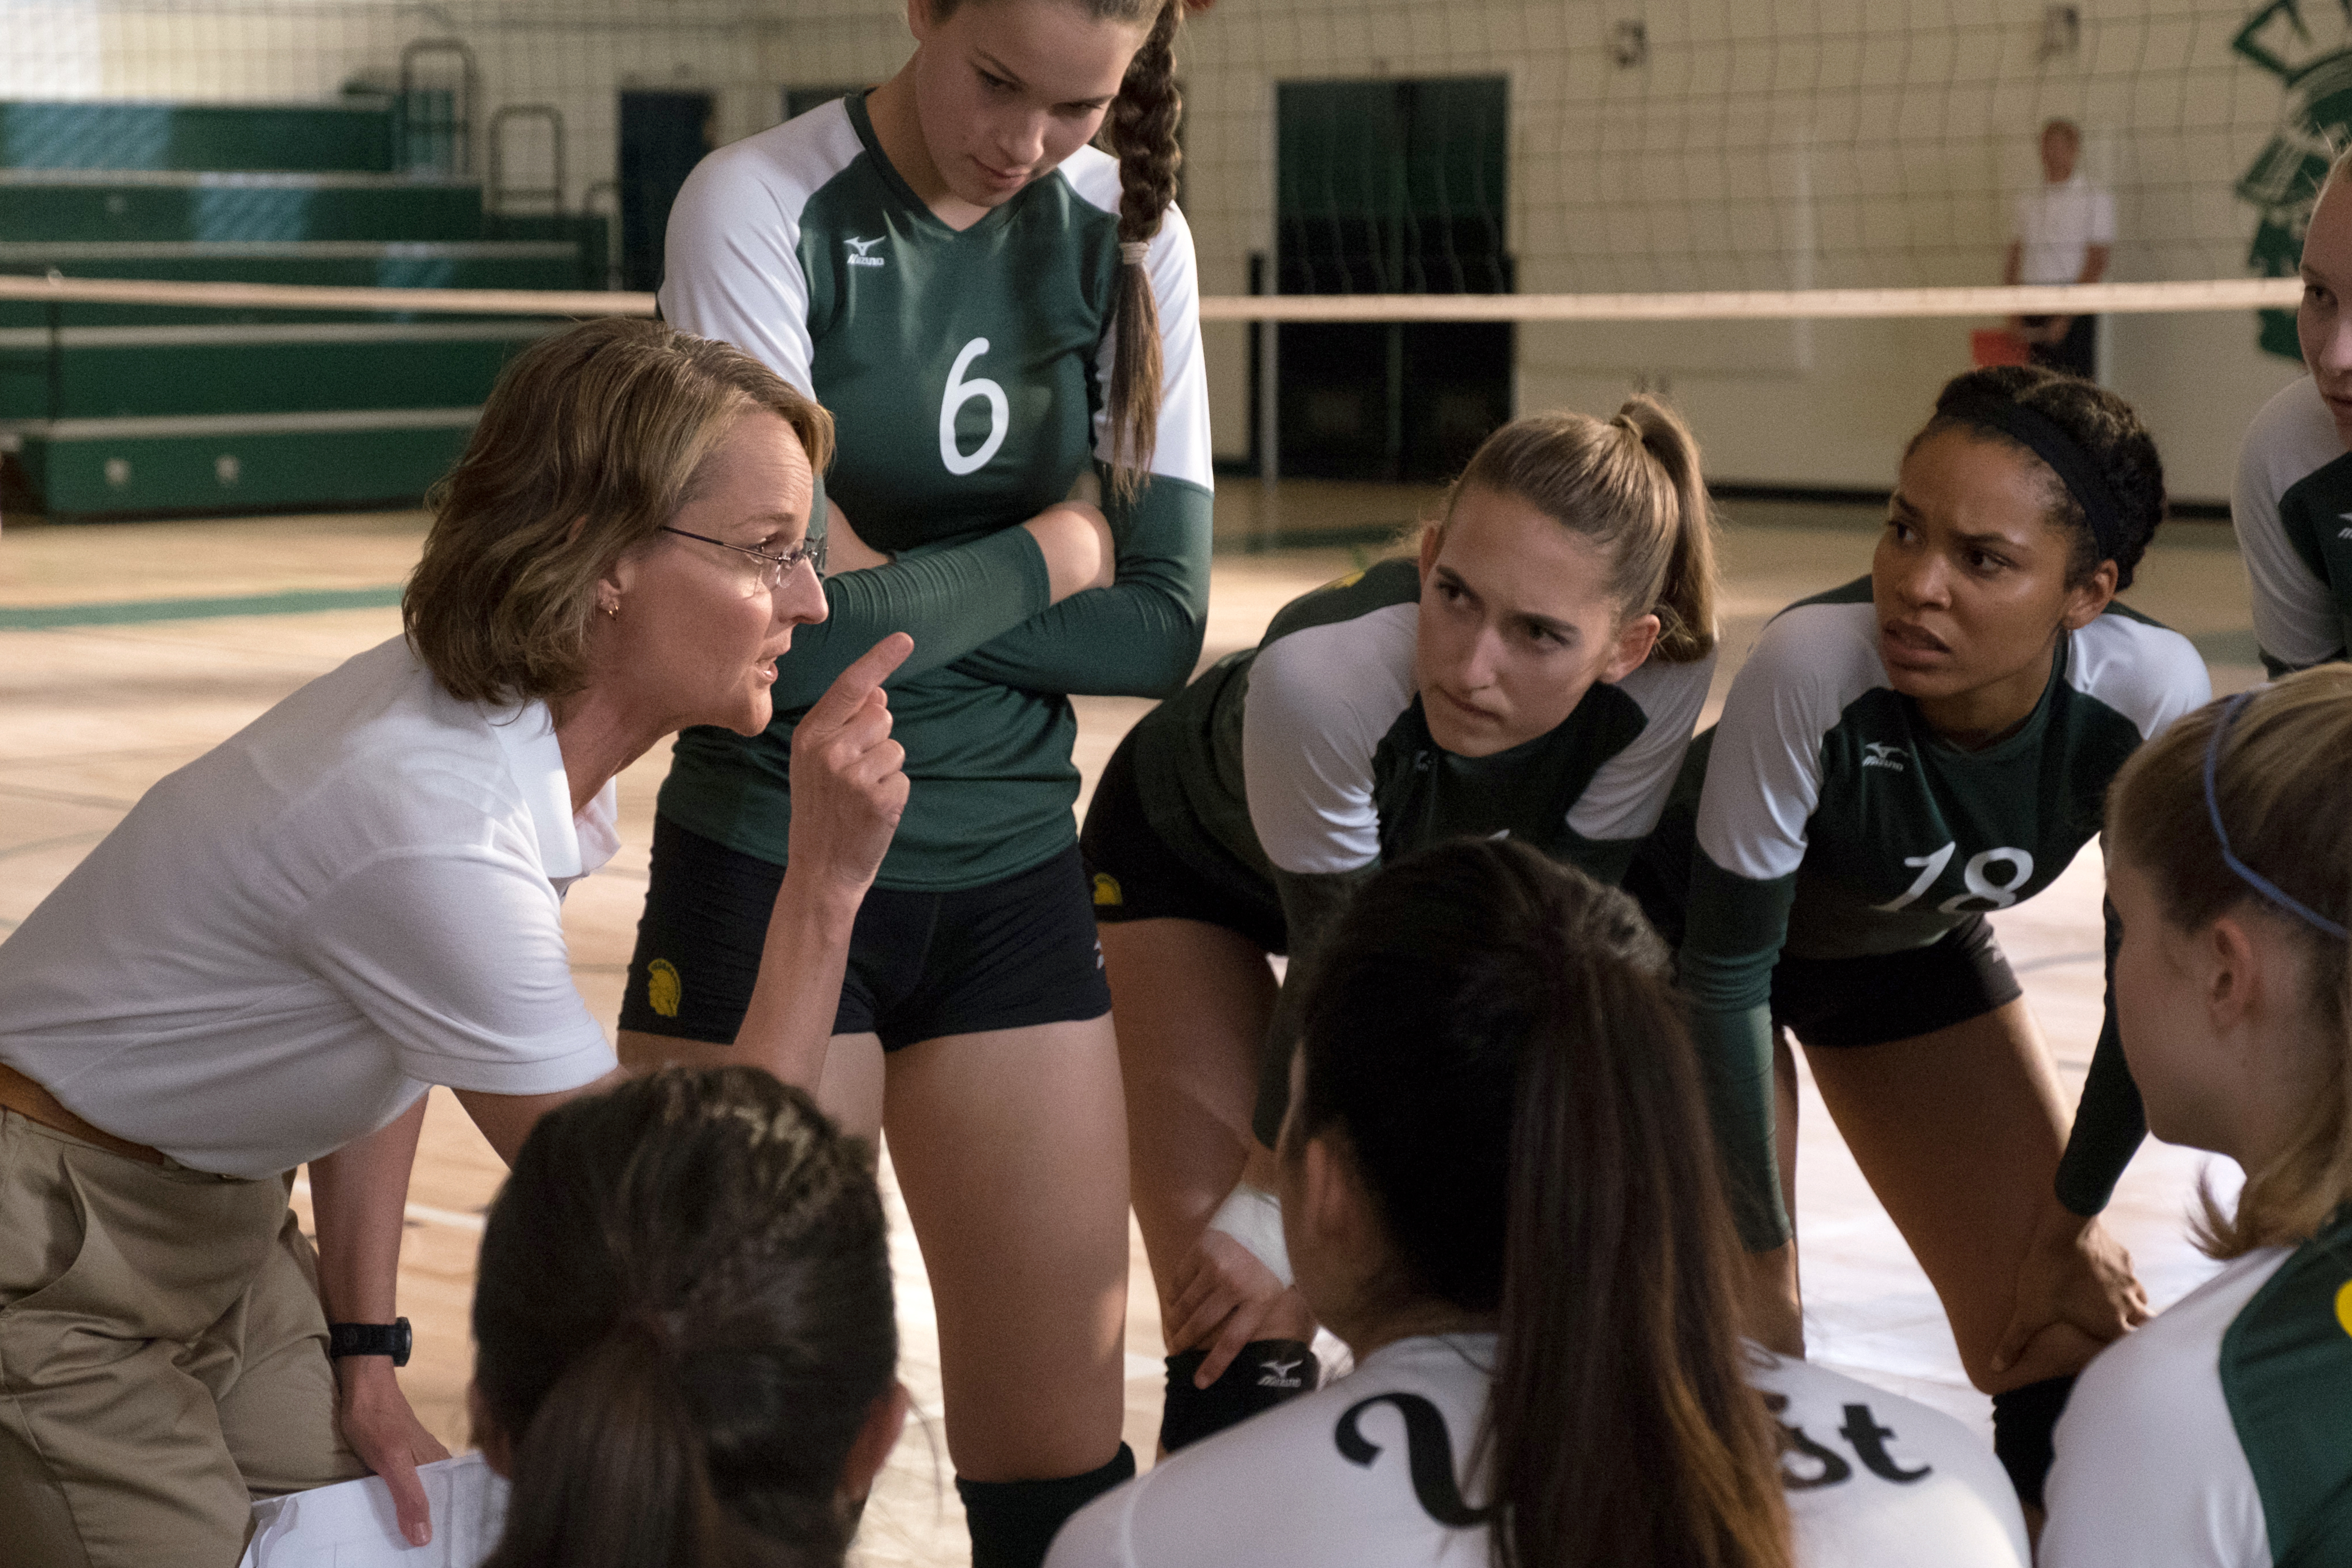 Movie review: Underdog sports tale 'Miracle Season' counters